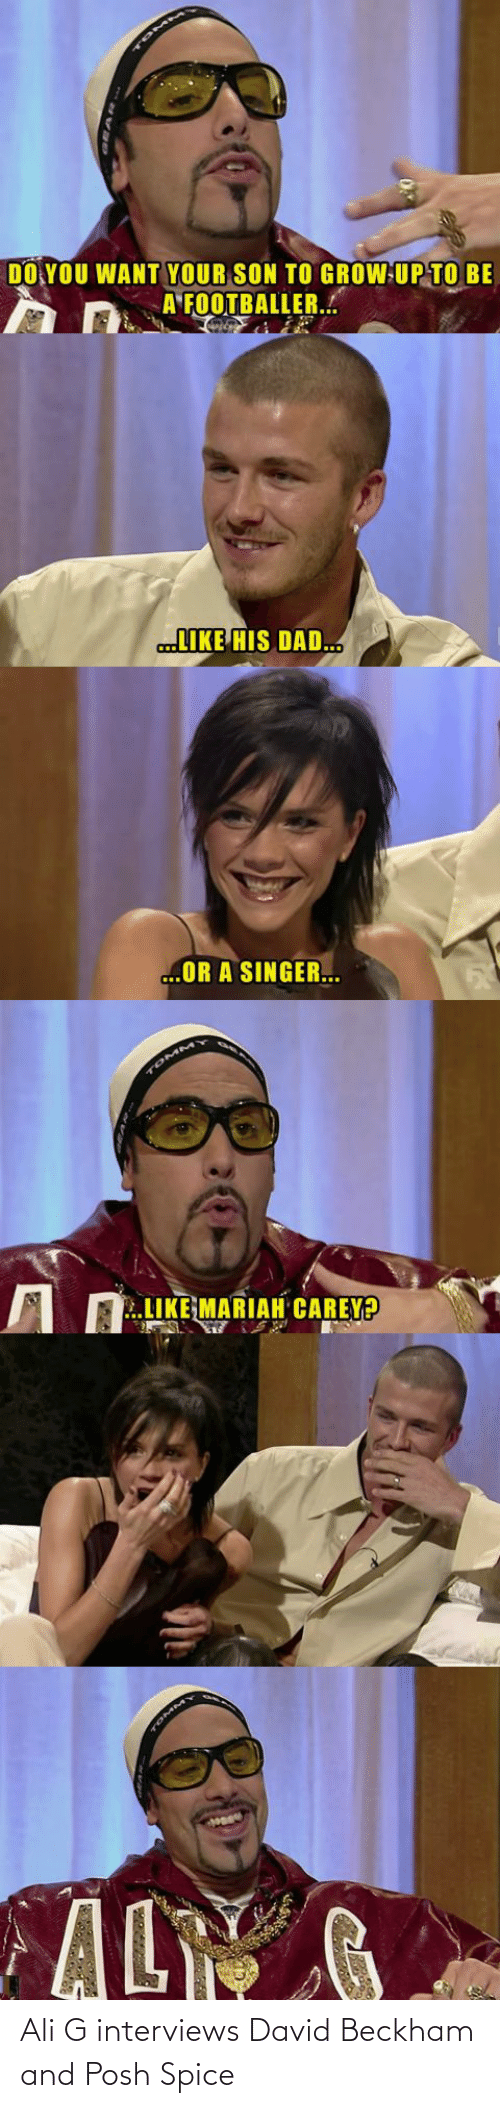 Ali: Ali G interviews David Beckham and Posh Spice